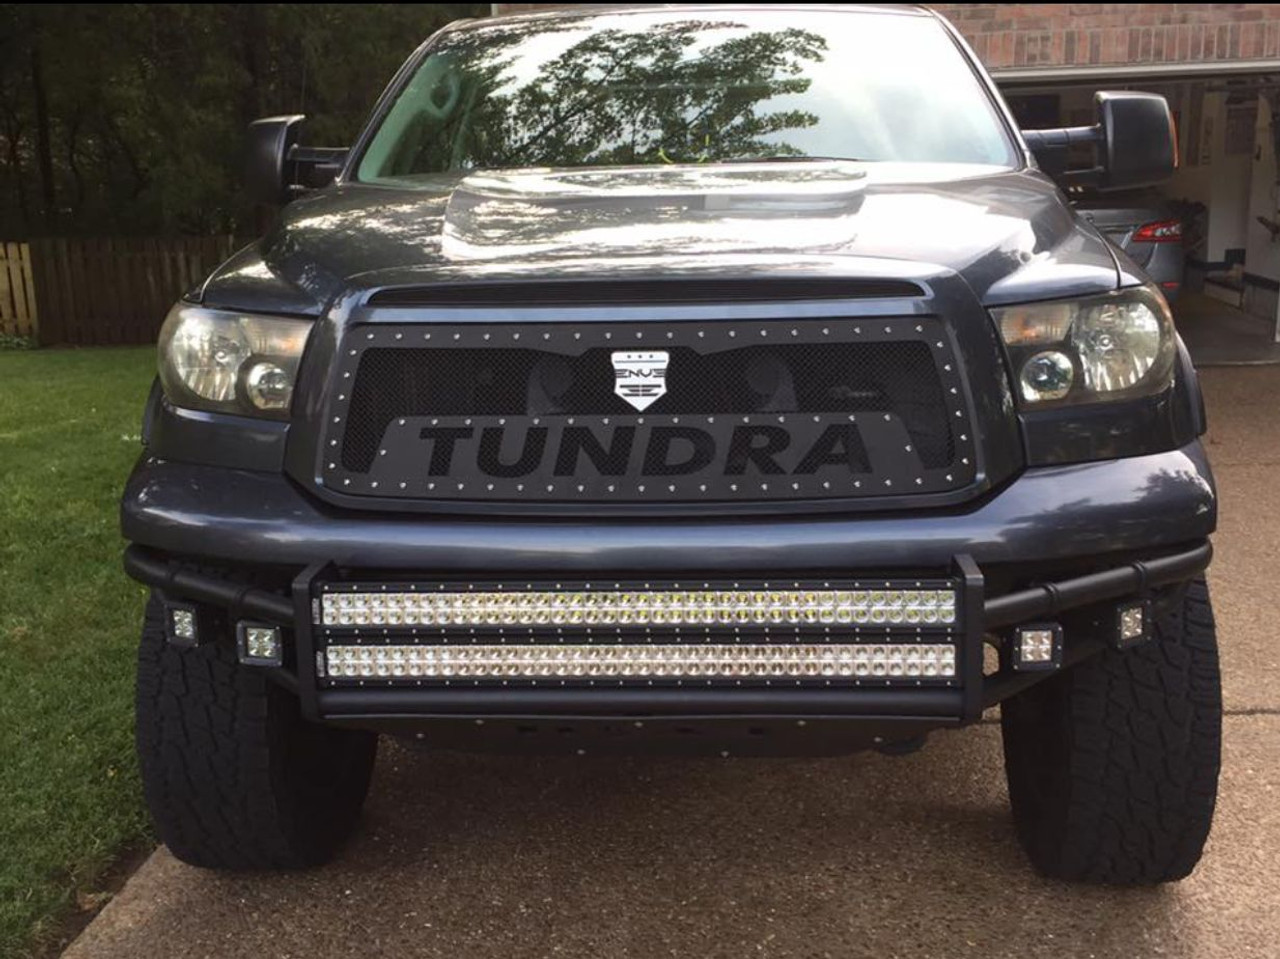 Blacked Out Rzr >> 2007-2009 Toyota Tundra TRD Style Spark - ENVE Grilles